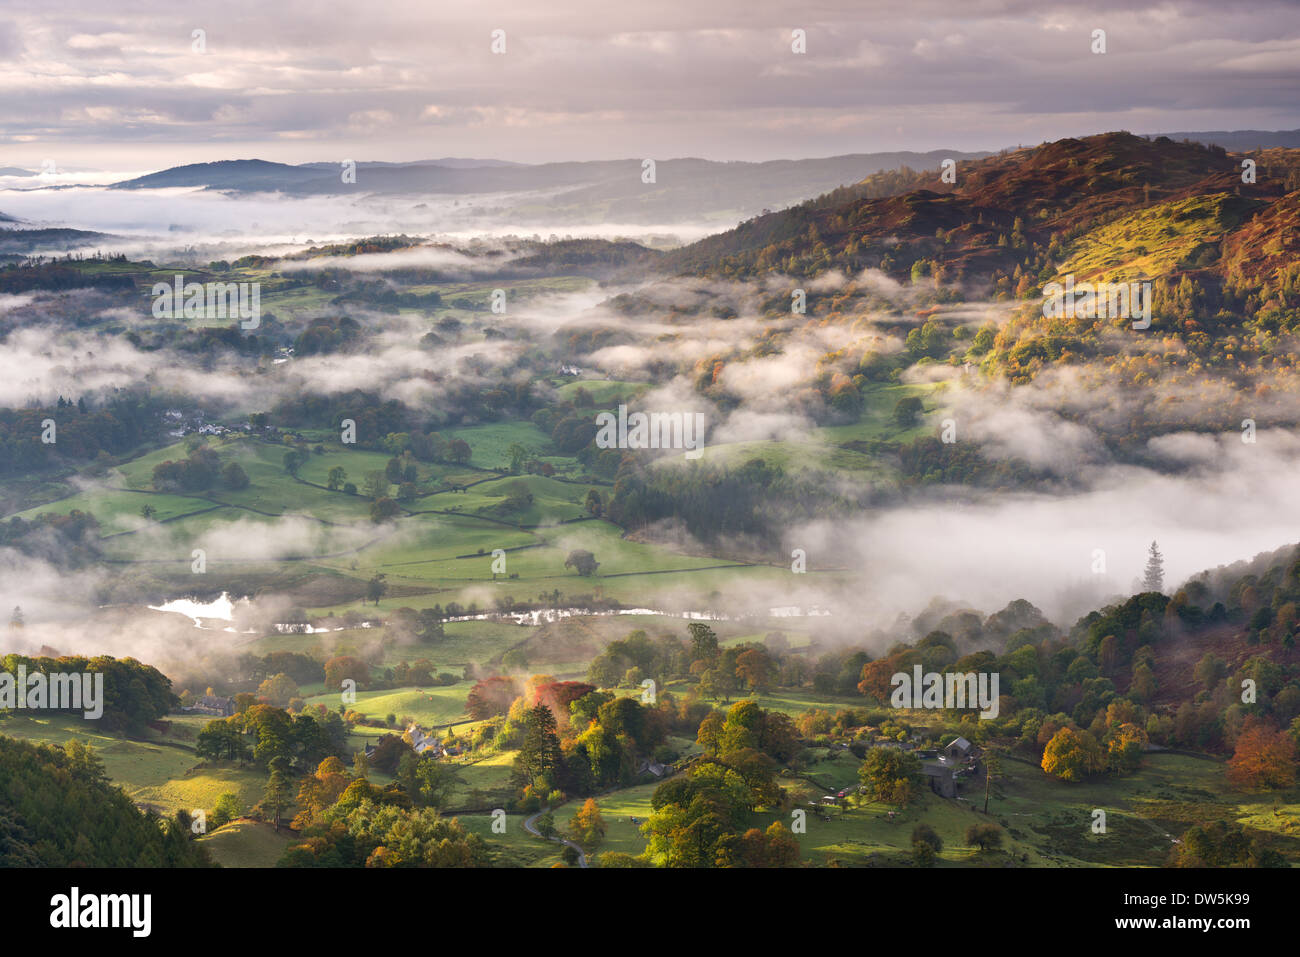 Parches de niebla de la mañana flotar por encima de la campiña, cerca del río Brathay, Lake District National Park, Foto de stock